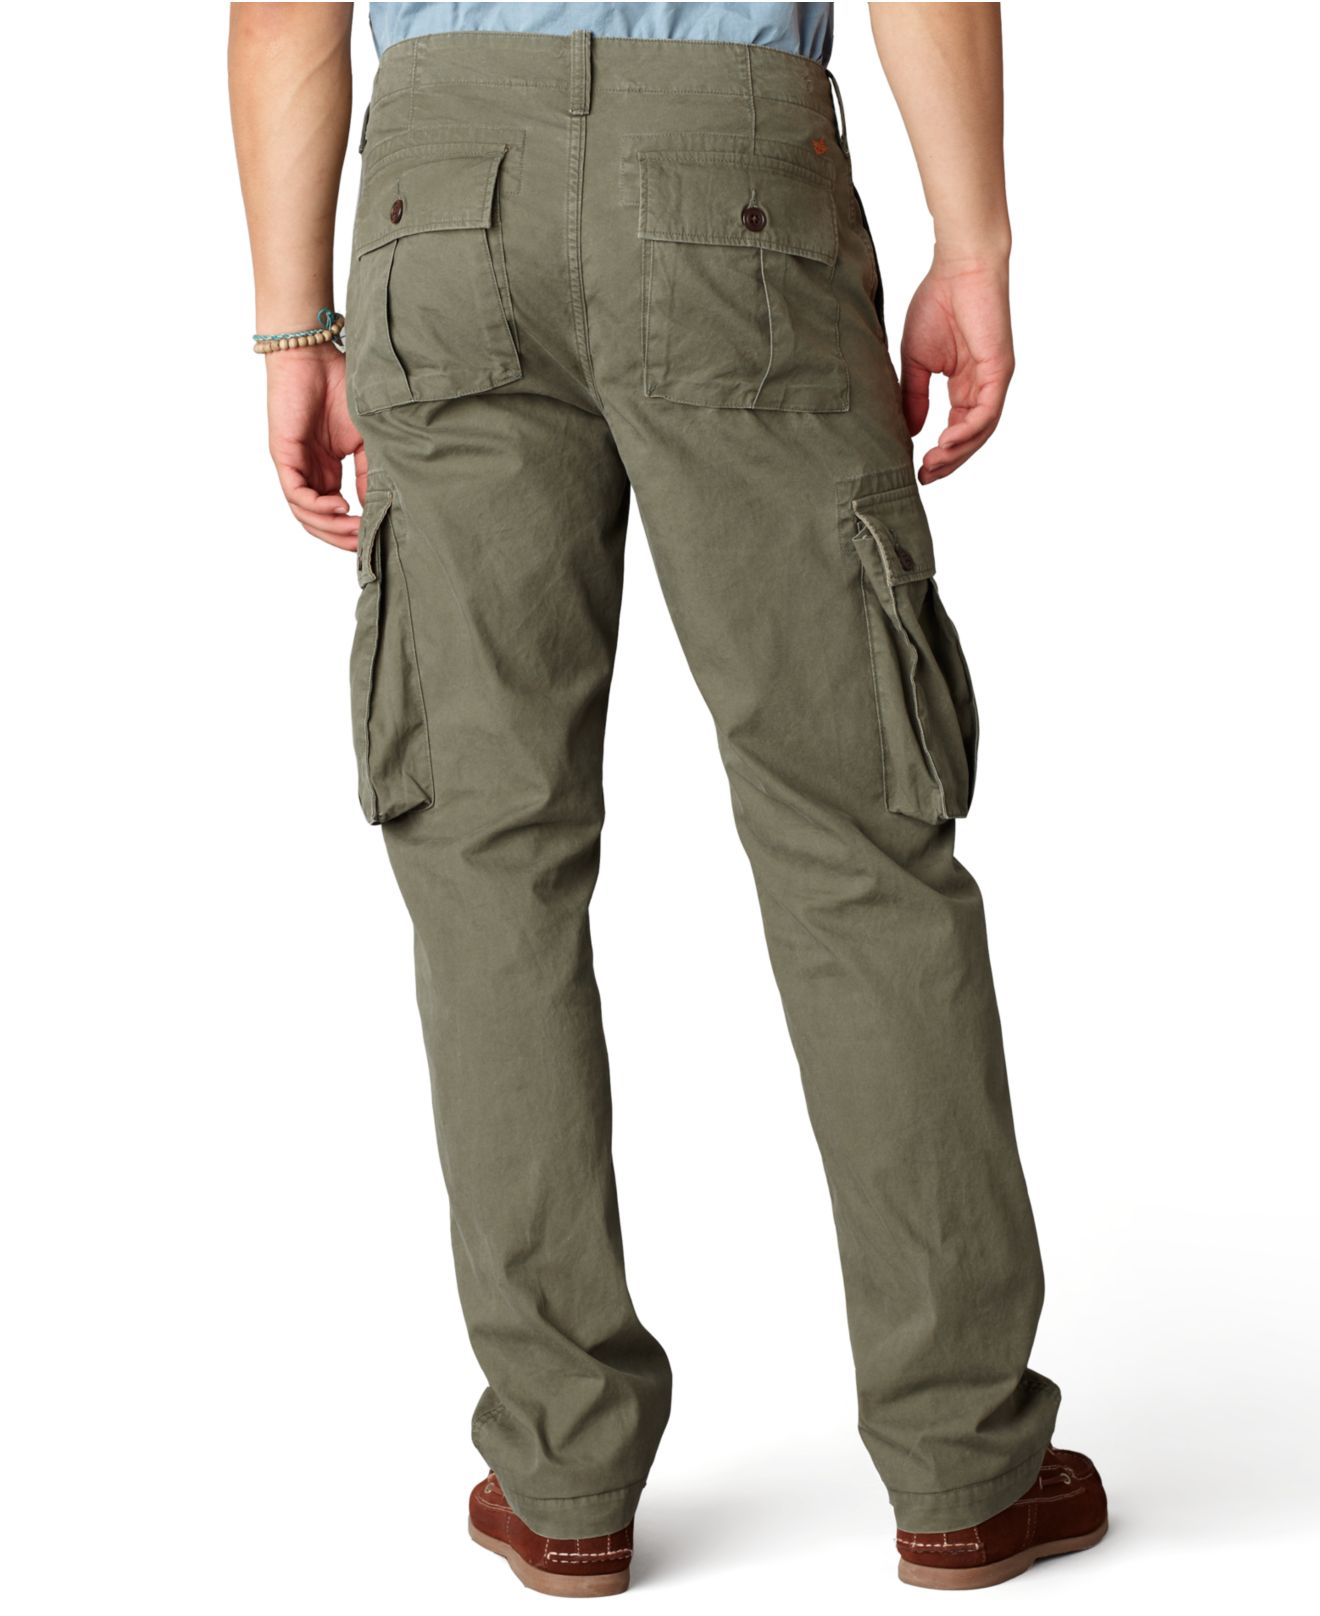 Dockers Bellowed Pocket Cargo In Army Green Green For